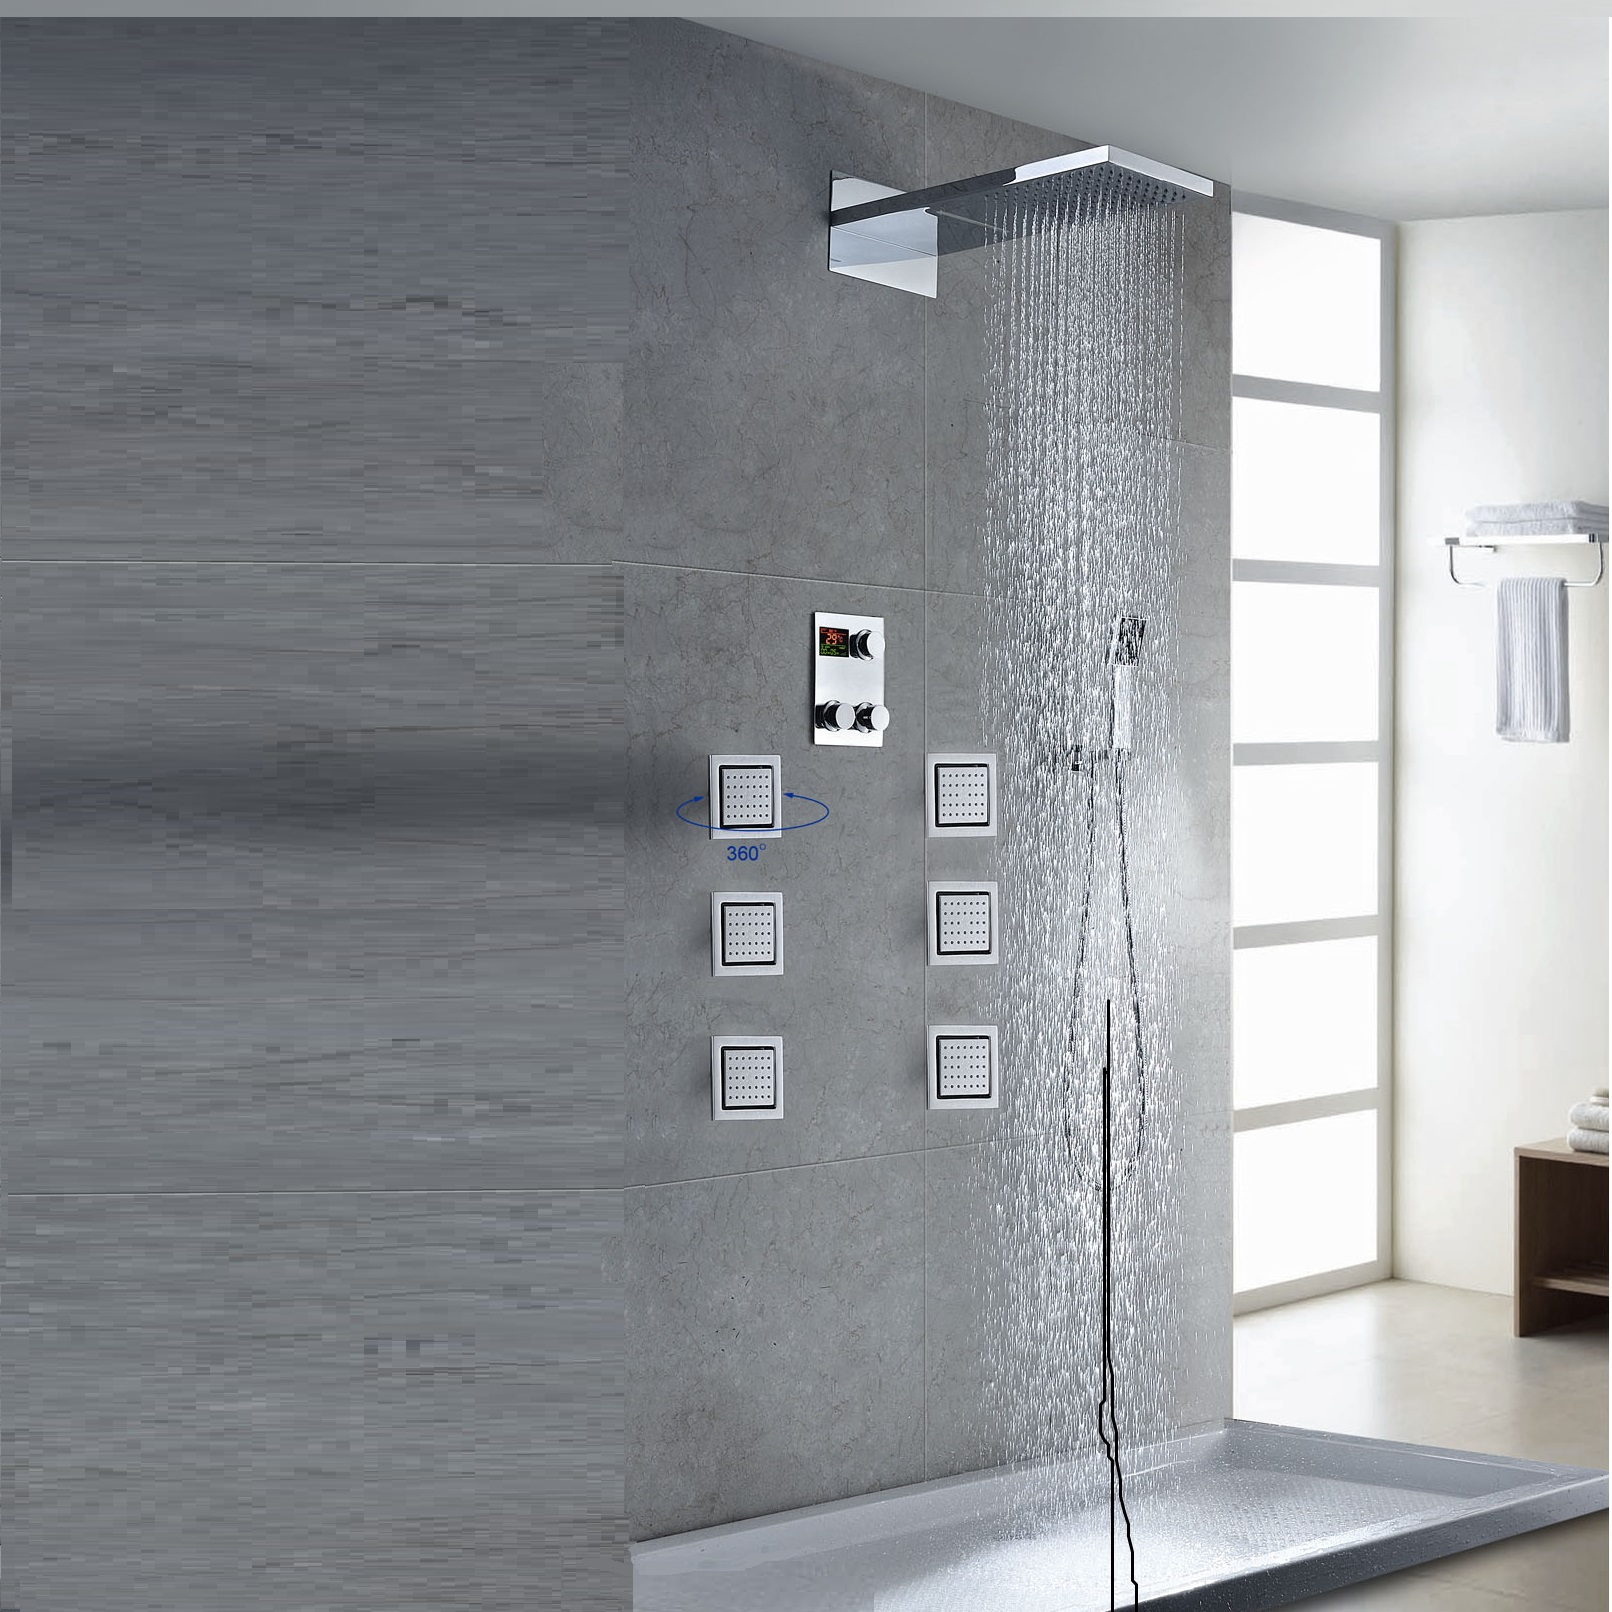 Buy Ultra Shower Set Zbd Digital At Bathselect. Lowest Price Guaranteed